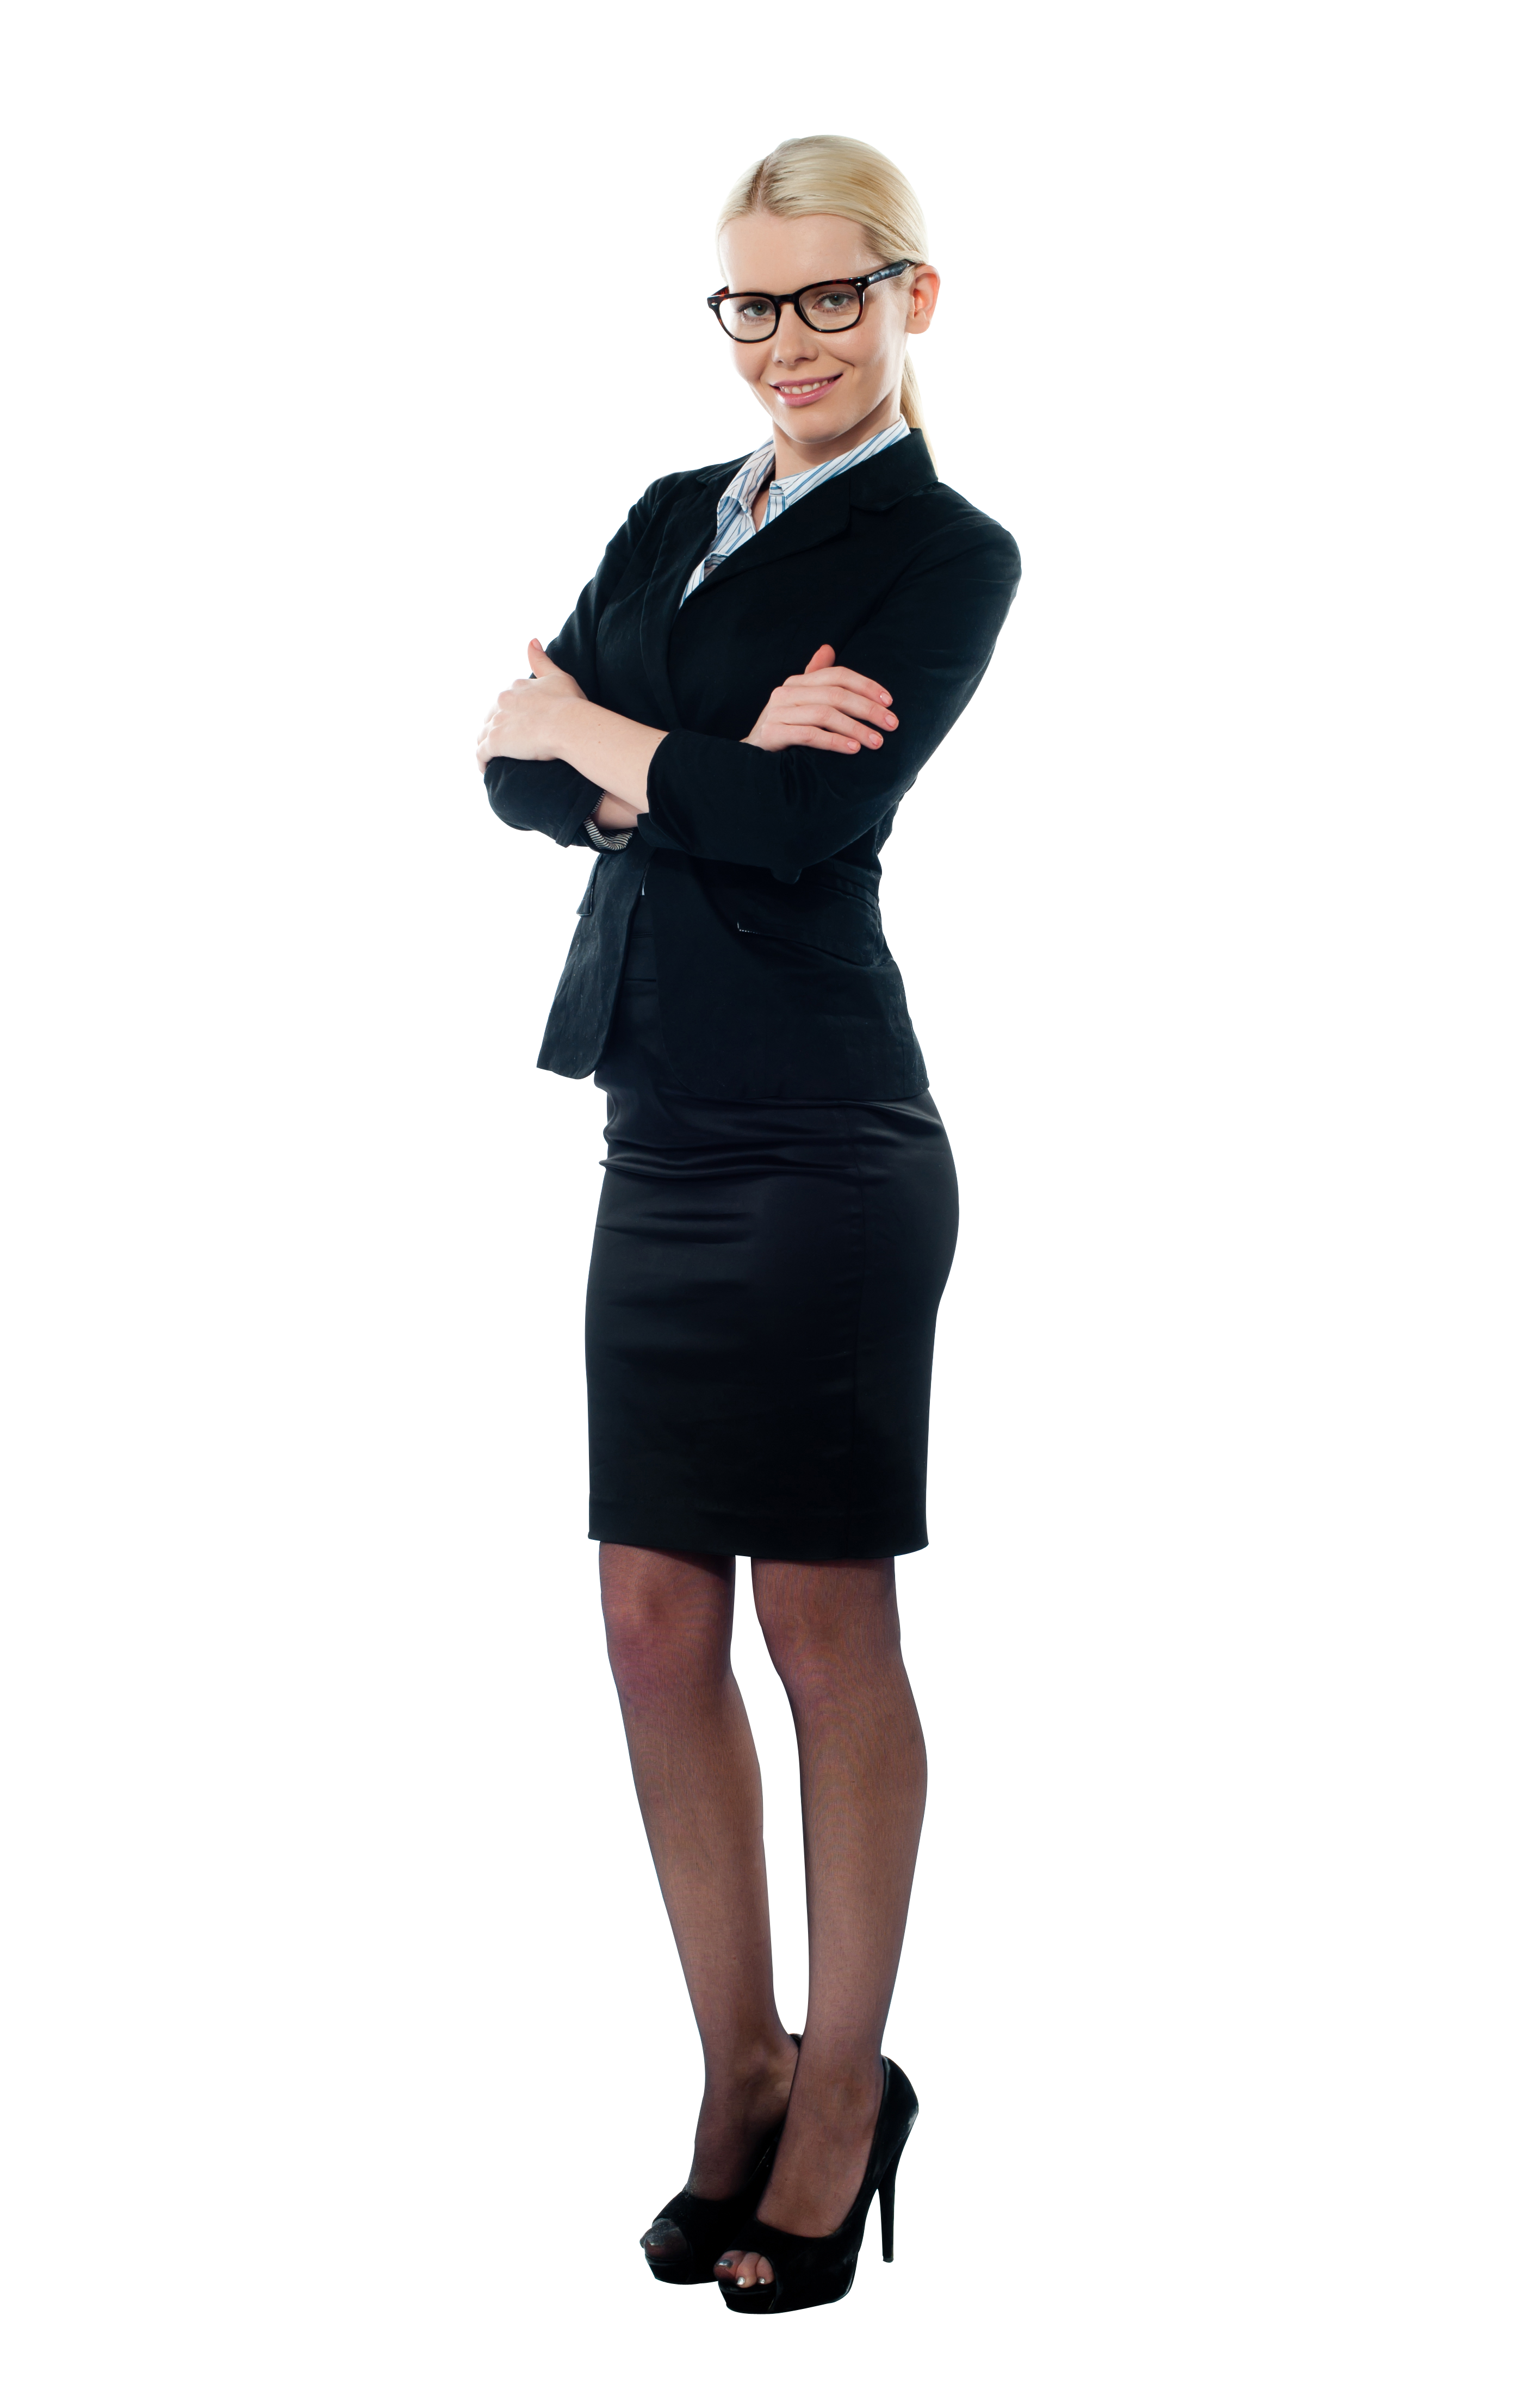 Business Women PNG Images Transparent Background.